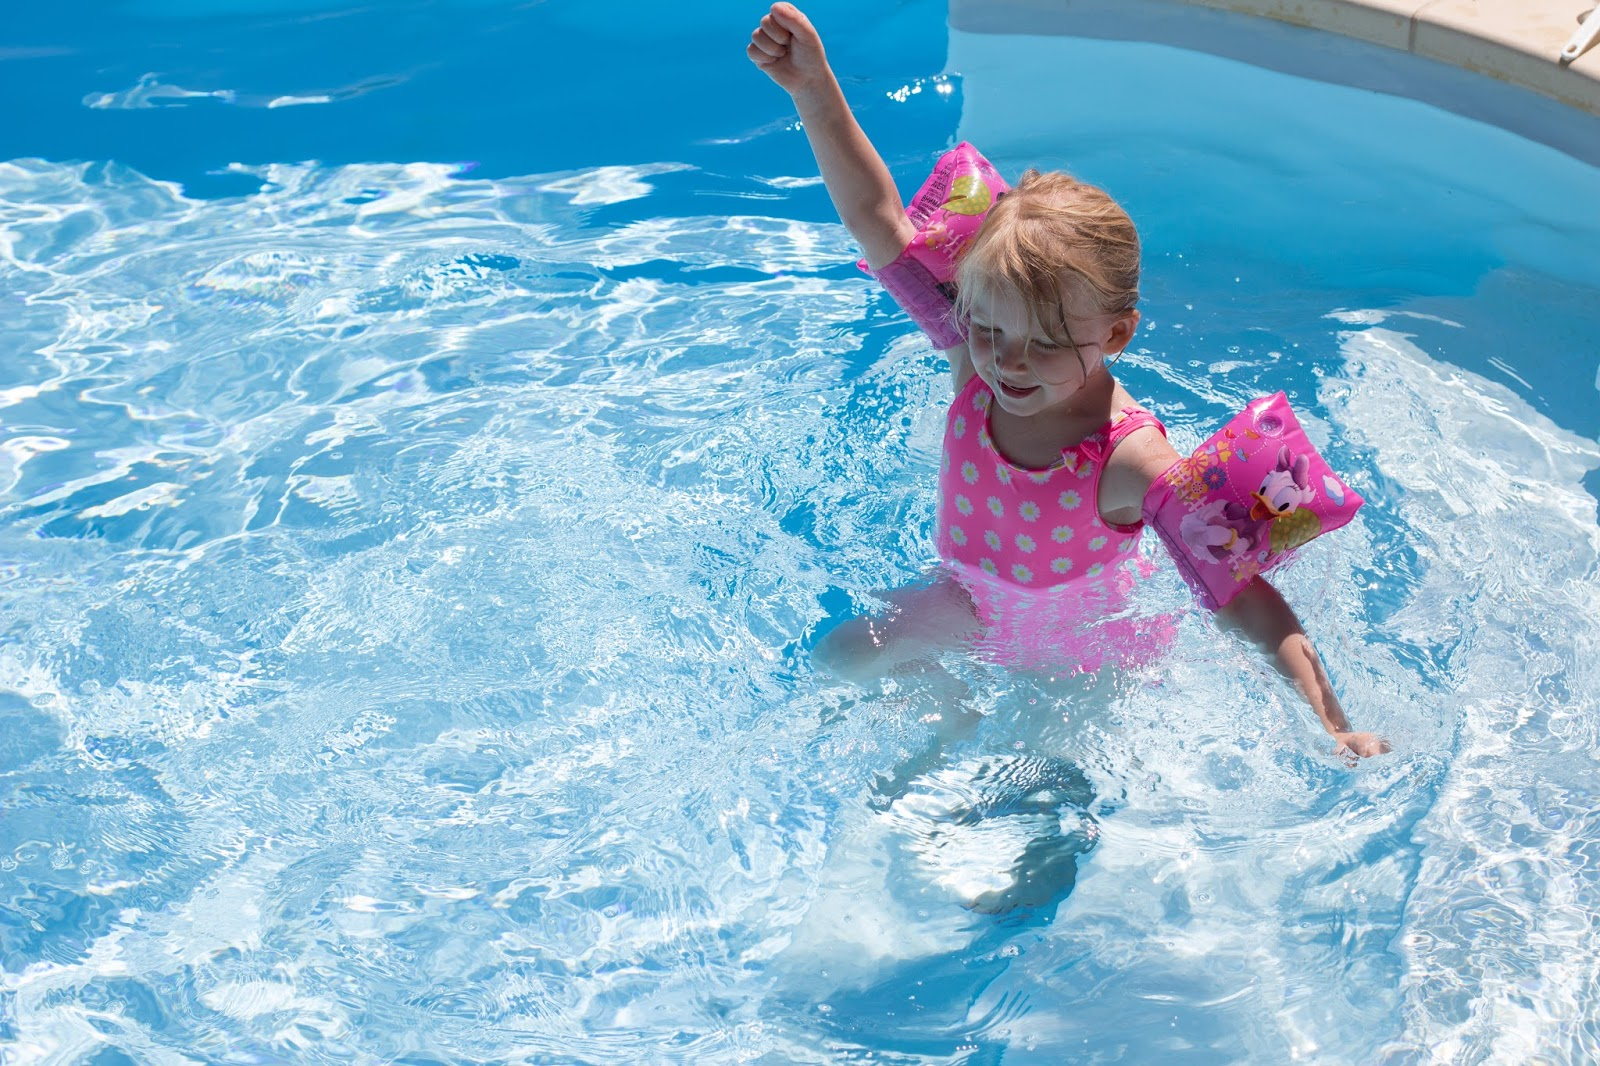 A nearly 5 year old splashing in a swimming pool in a pink swimming costume and arm bands